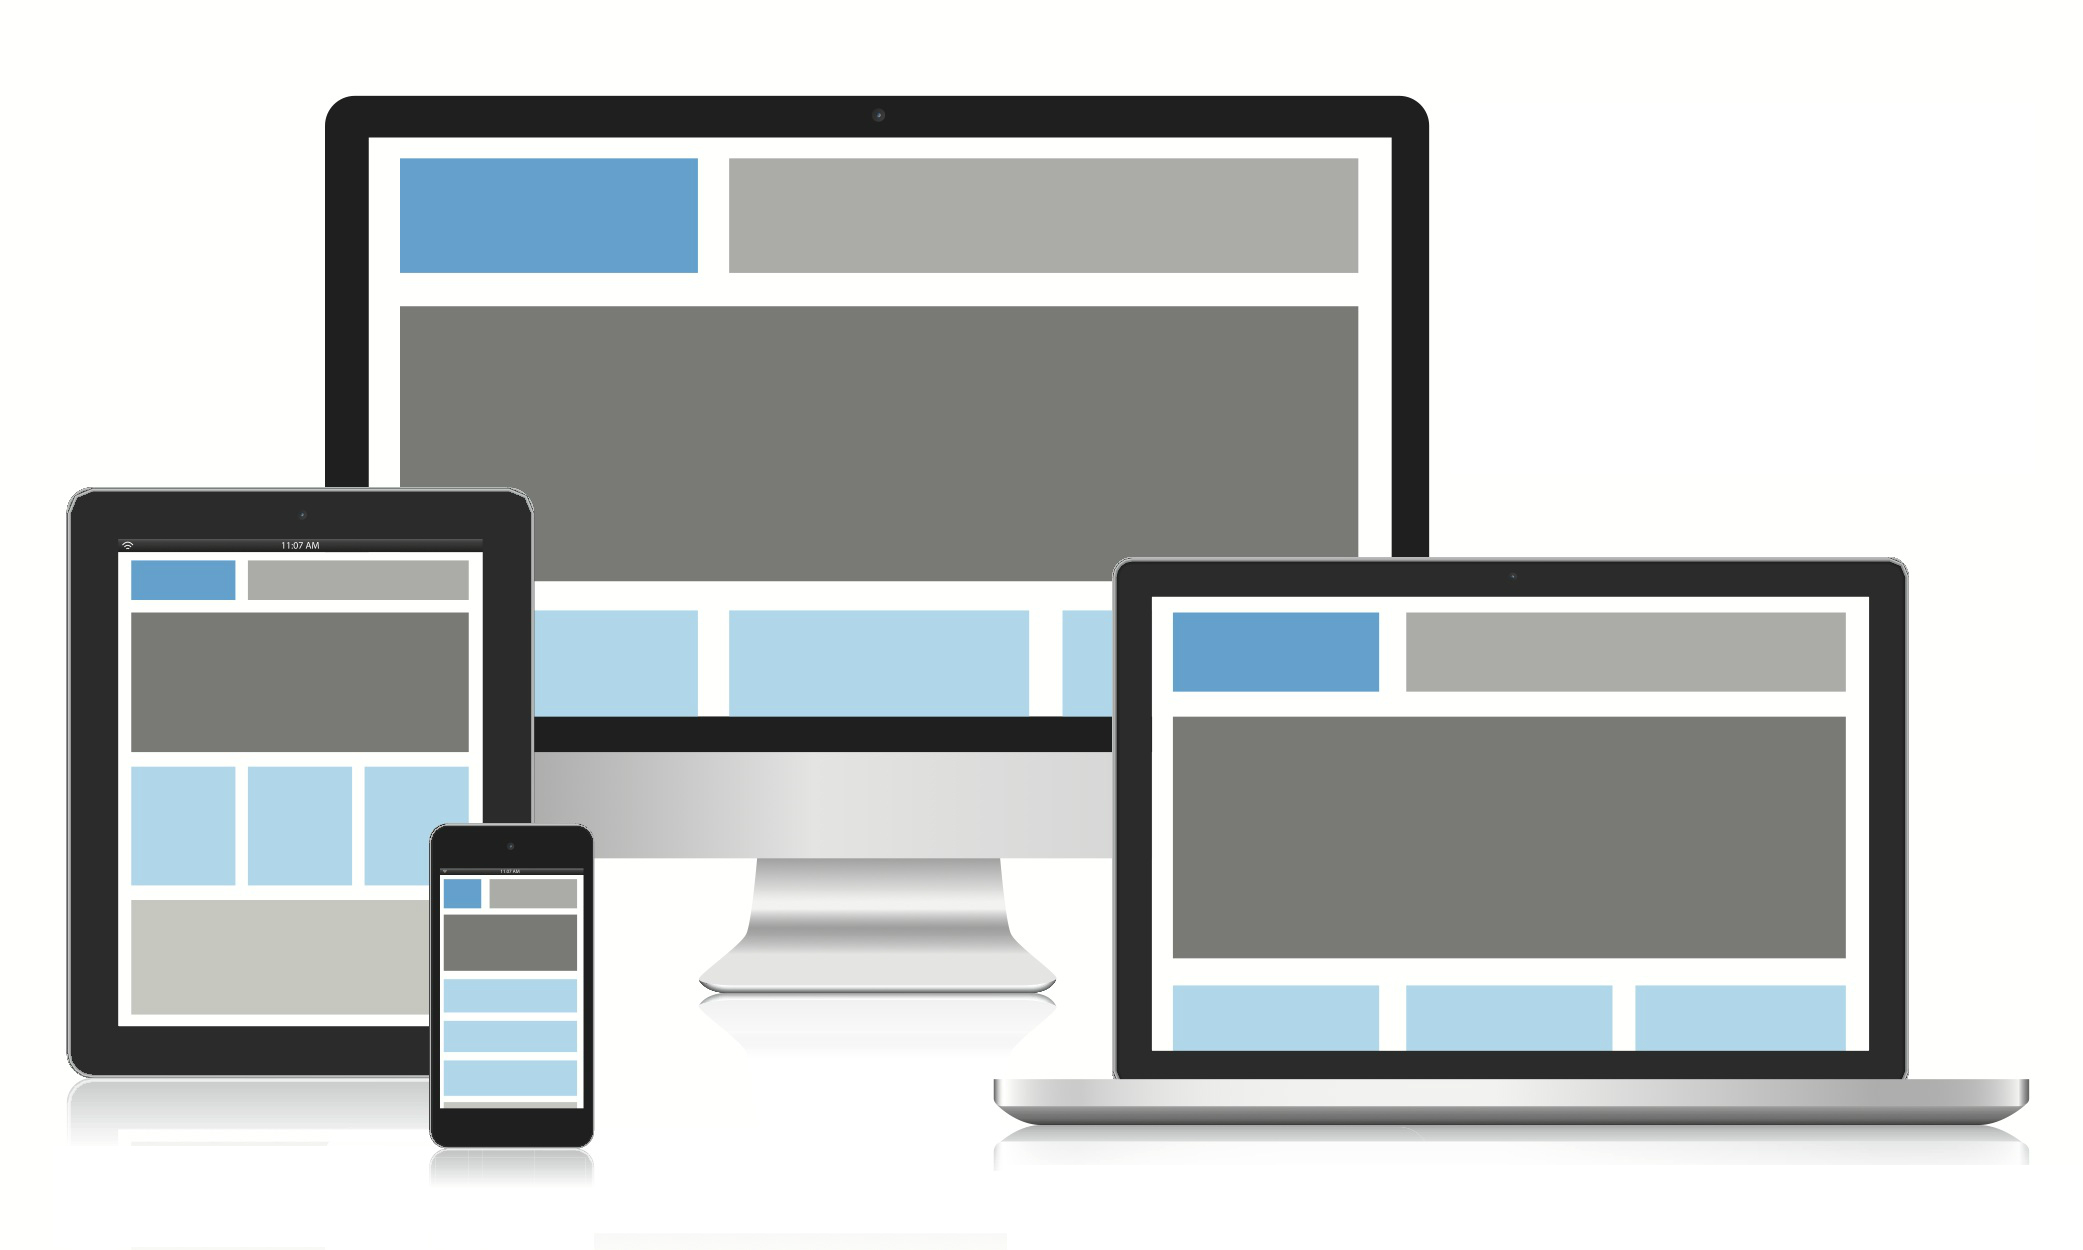 Responsive Web Design as one of Ecommerce Website design trends 2016